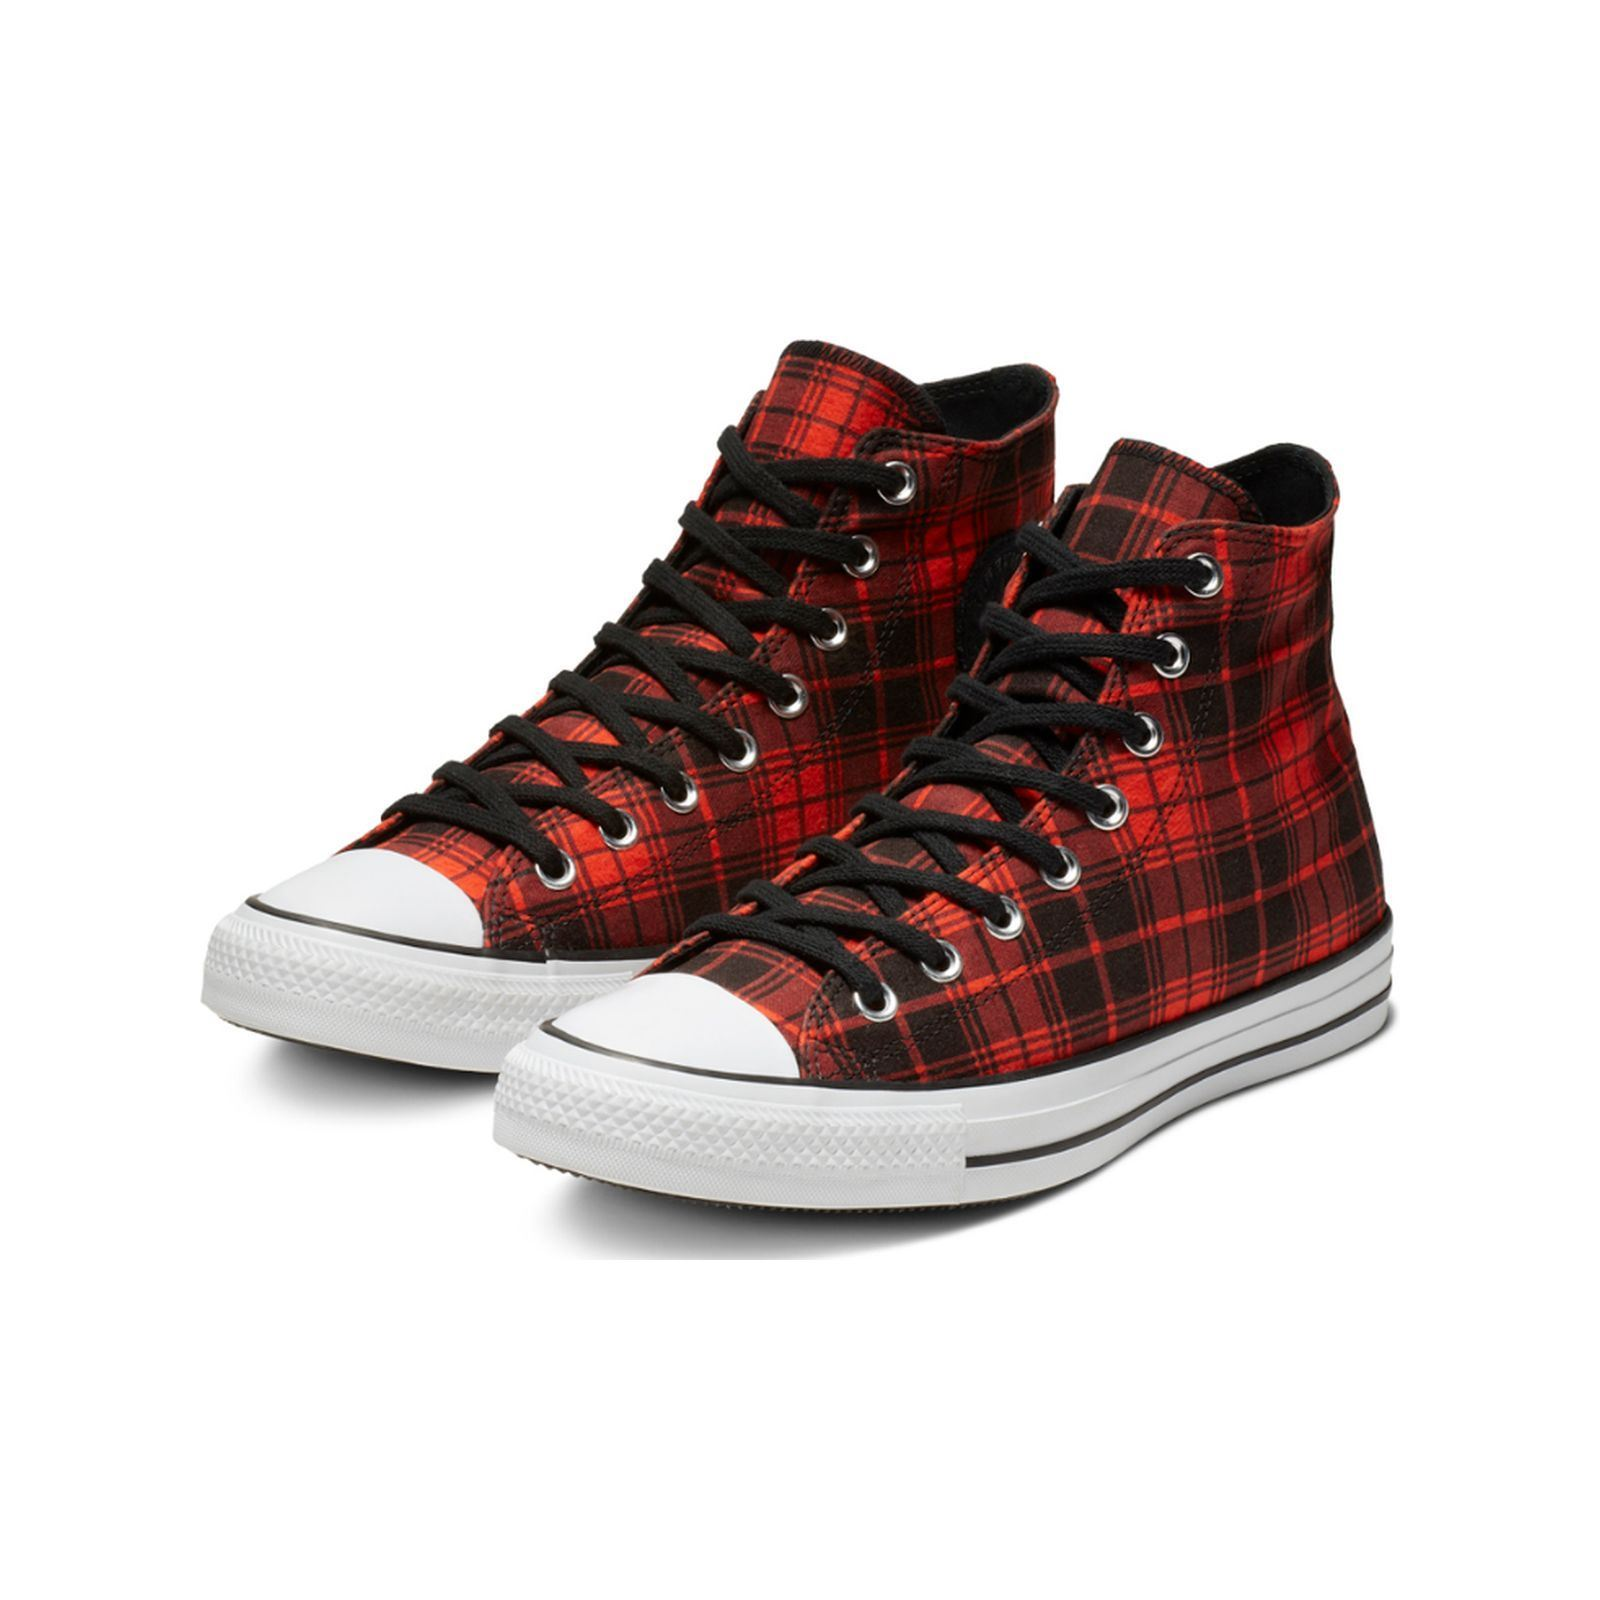 88ddaa67288 Converse Chuck Taylor all star - Baskets montantes - rouge